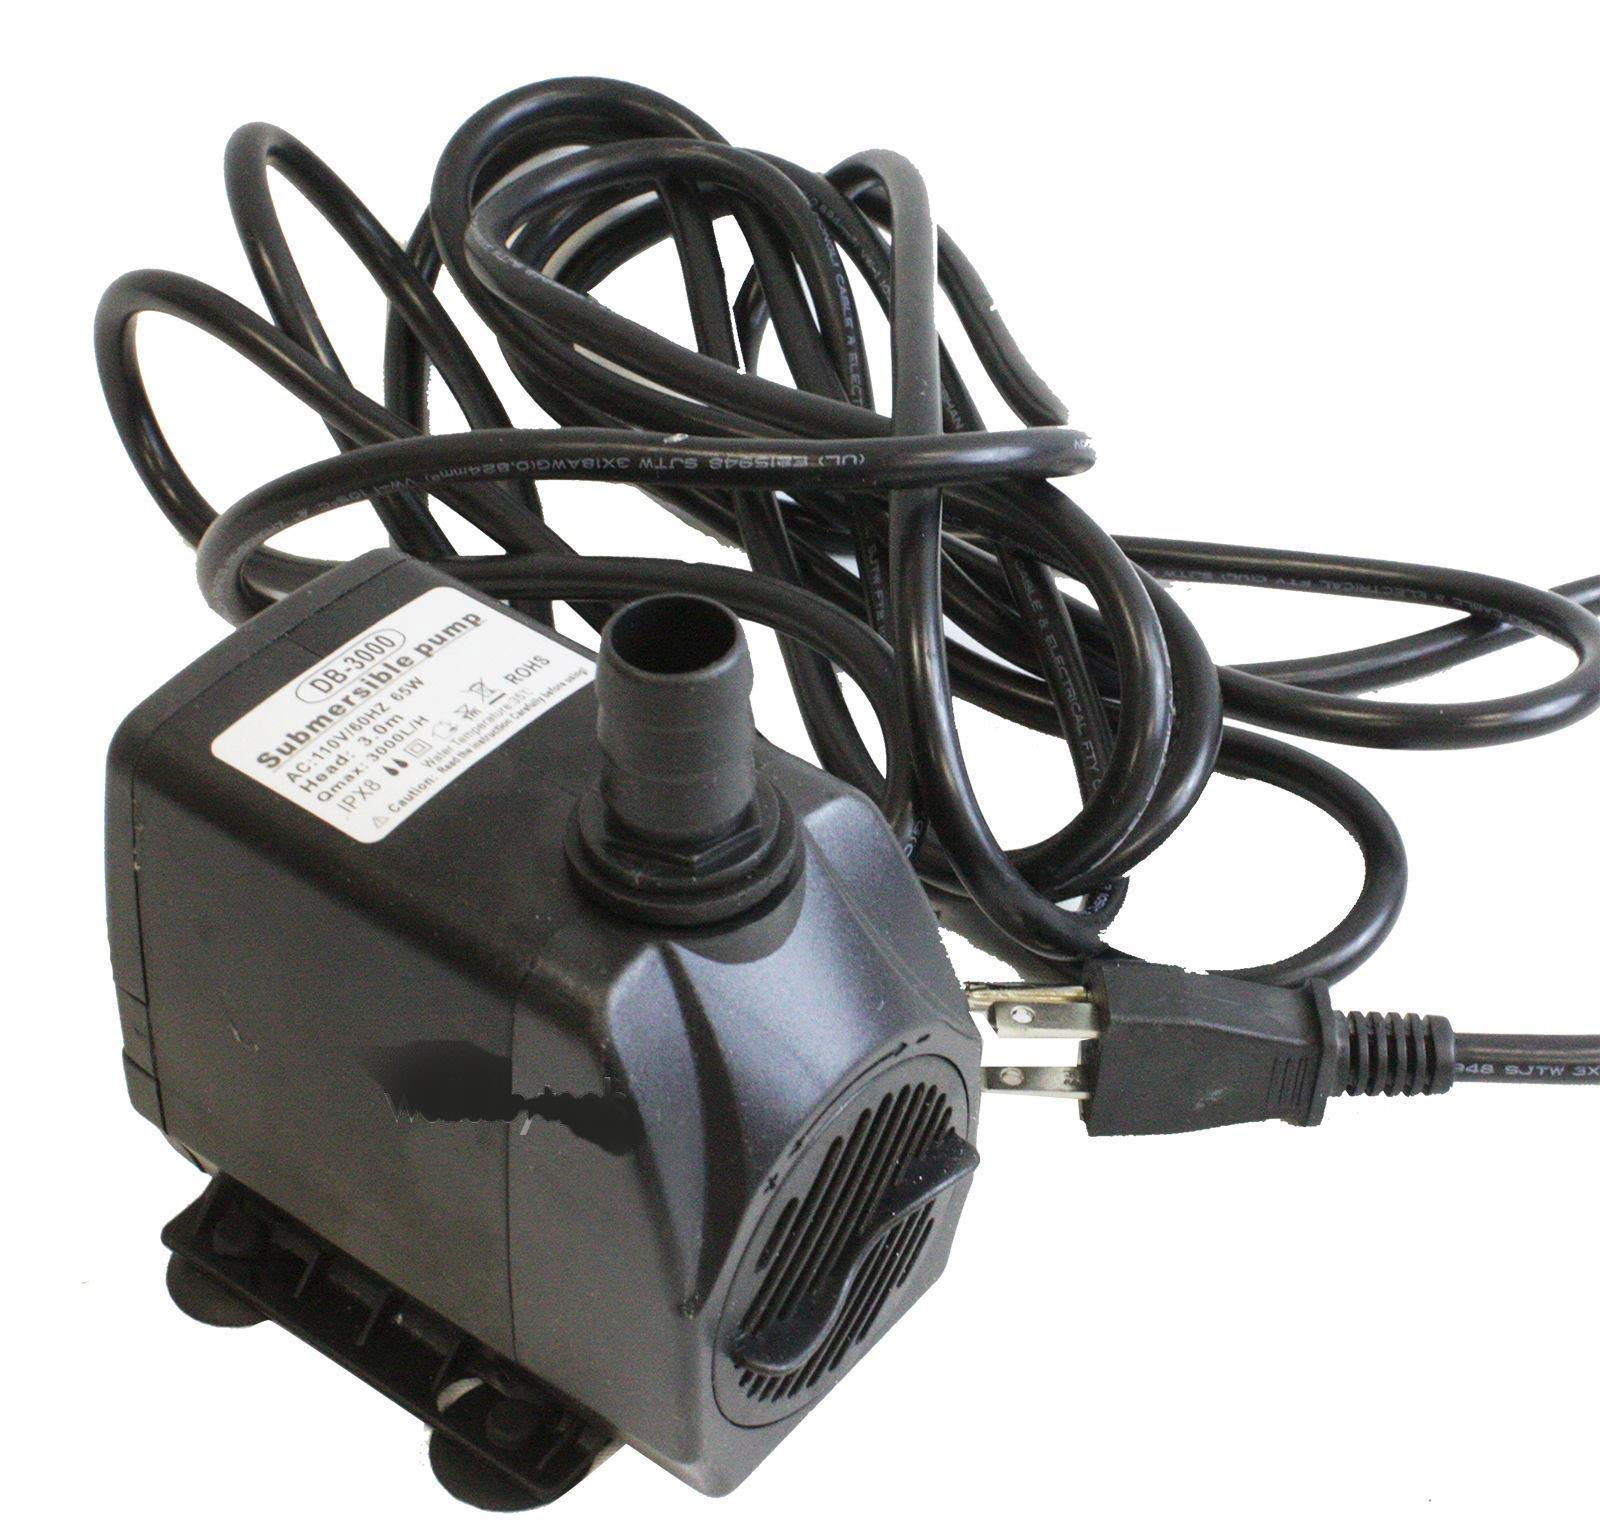 KCHEX>65W 760GPH Electric Garden Submersible Fountain Pond Water Feature Pump DB-3000>Rated Power: 65W◎ Max Head: 3m◎ Max Flow: 3000LPH◎ Voltage: 110V/60HZ, US Plug Application: This Product is Used